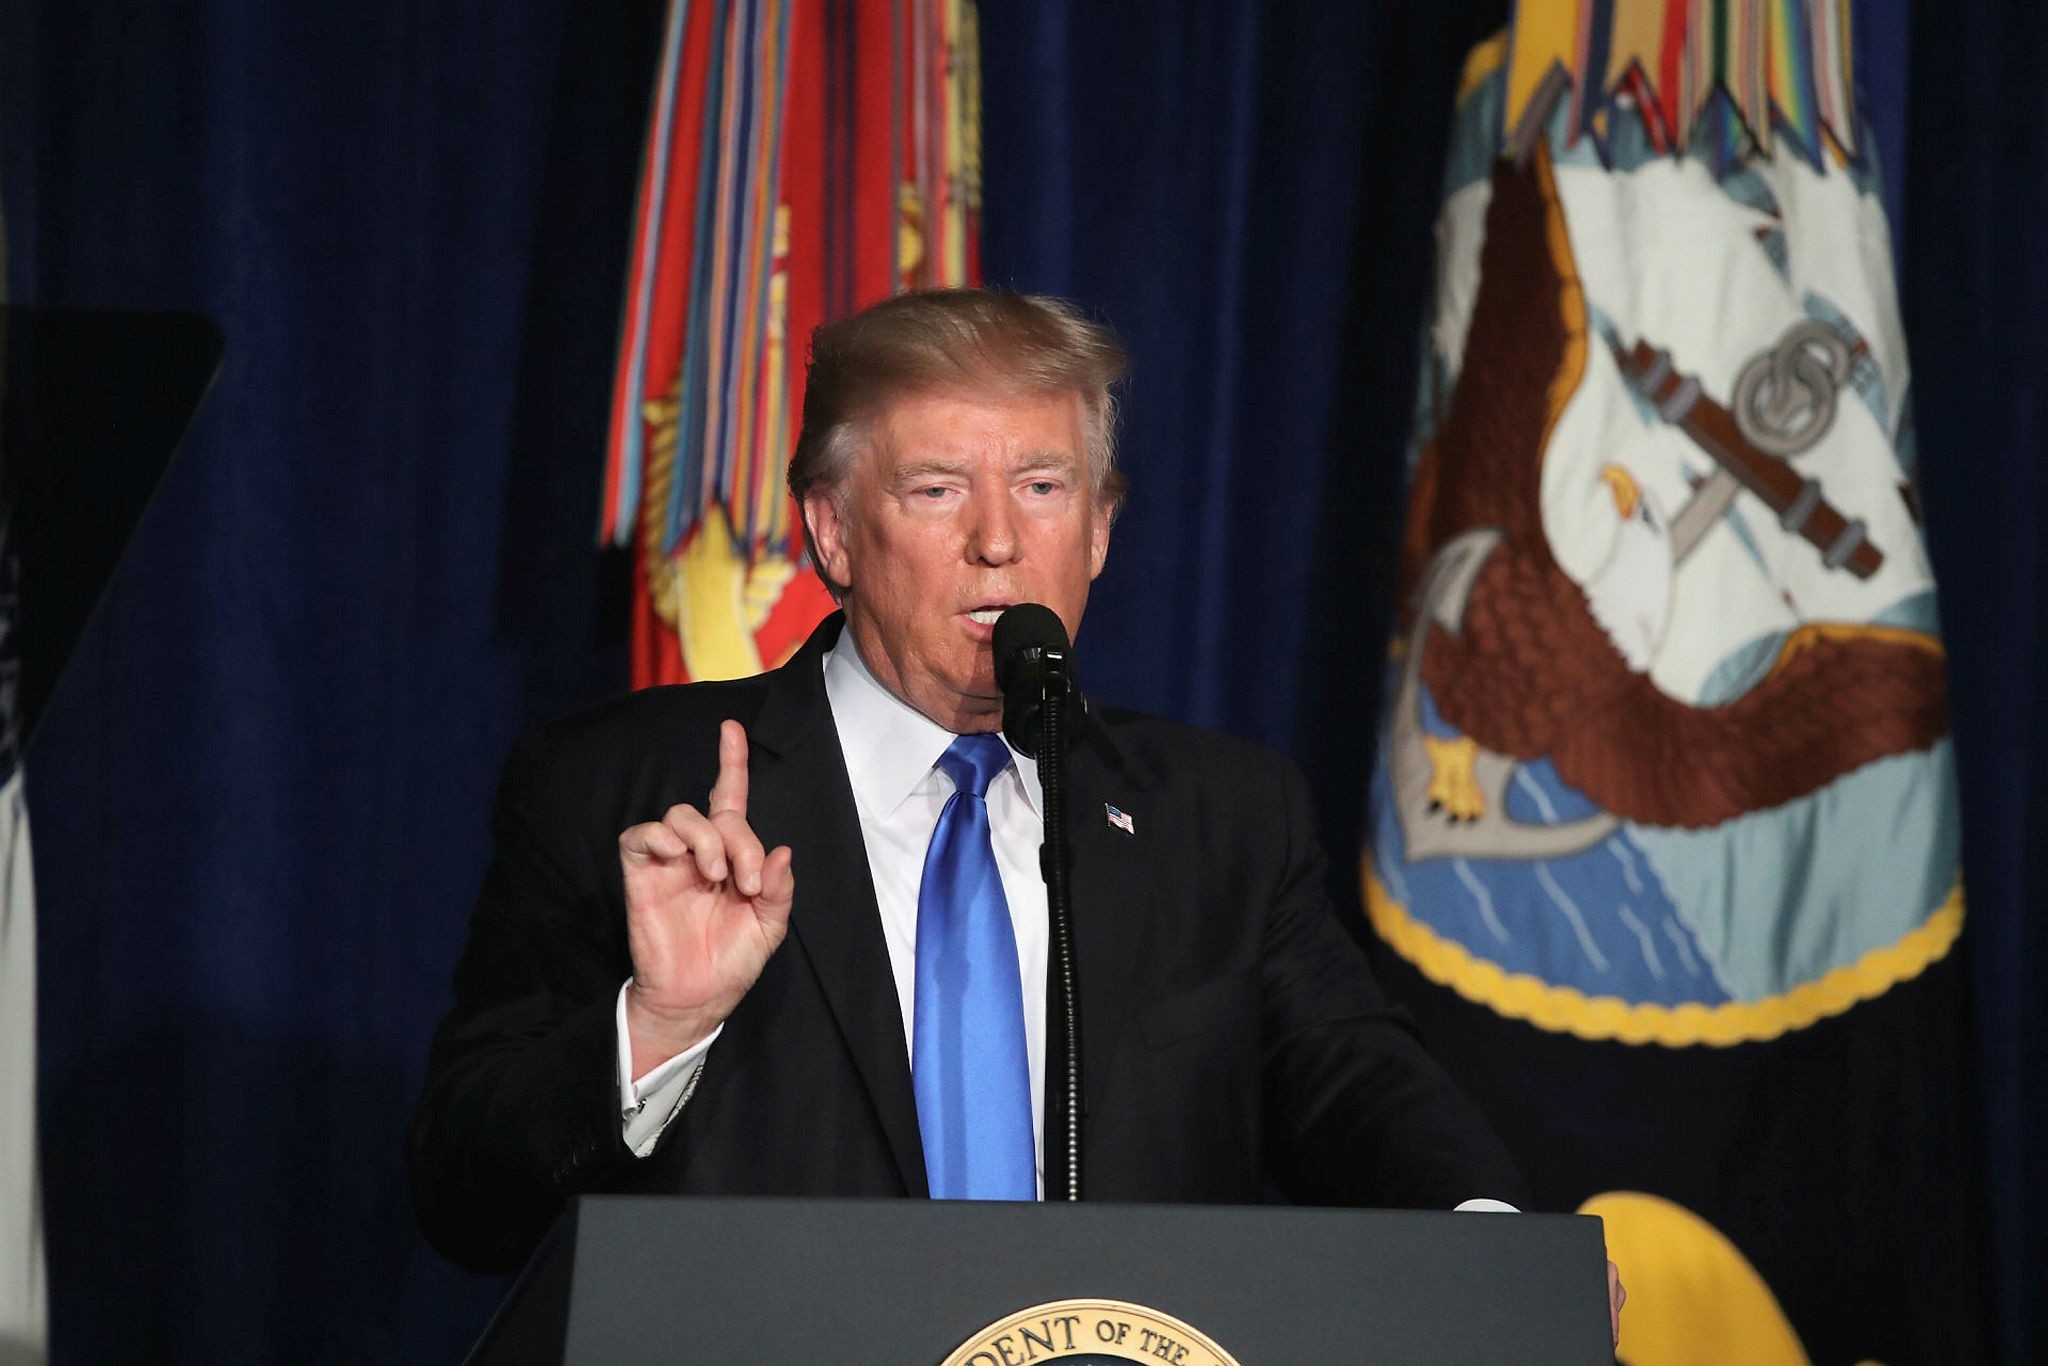 US President Donald J. Trump delivers remarks at the Fort Myer military base in Arlington, VA, August 21. (IHA Photo)